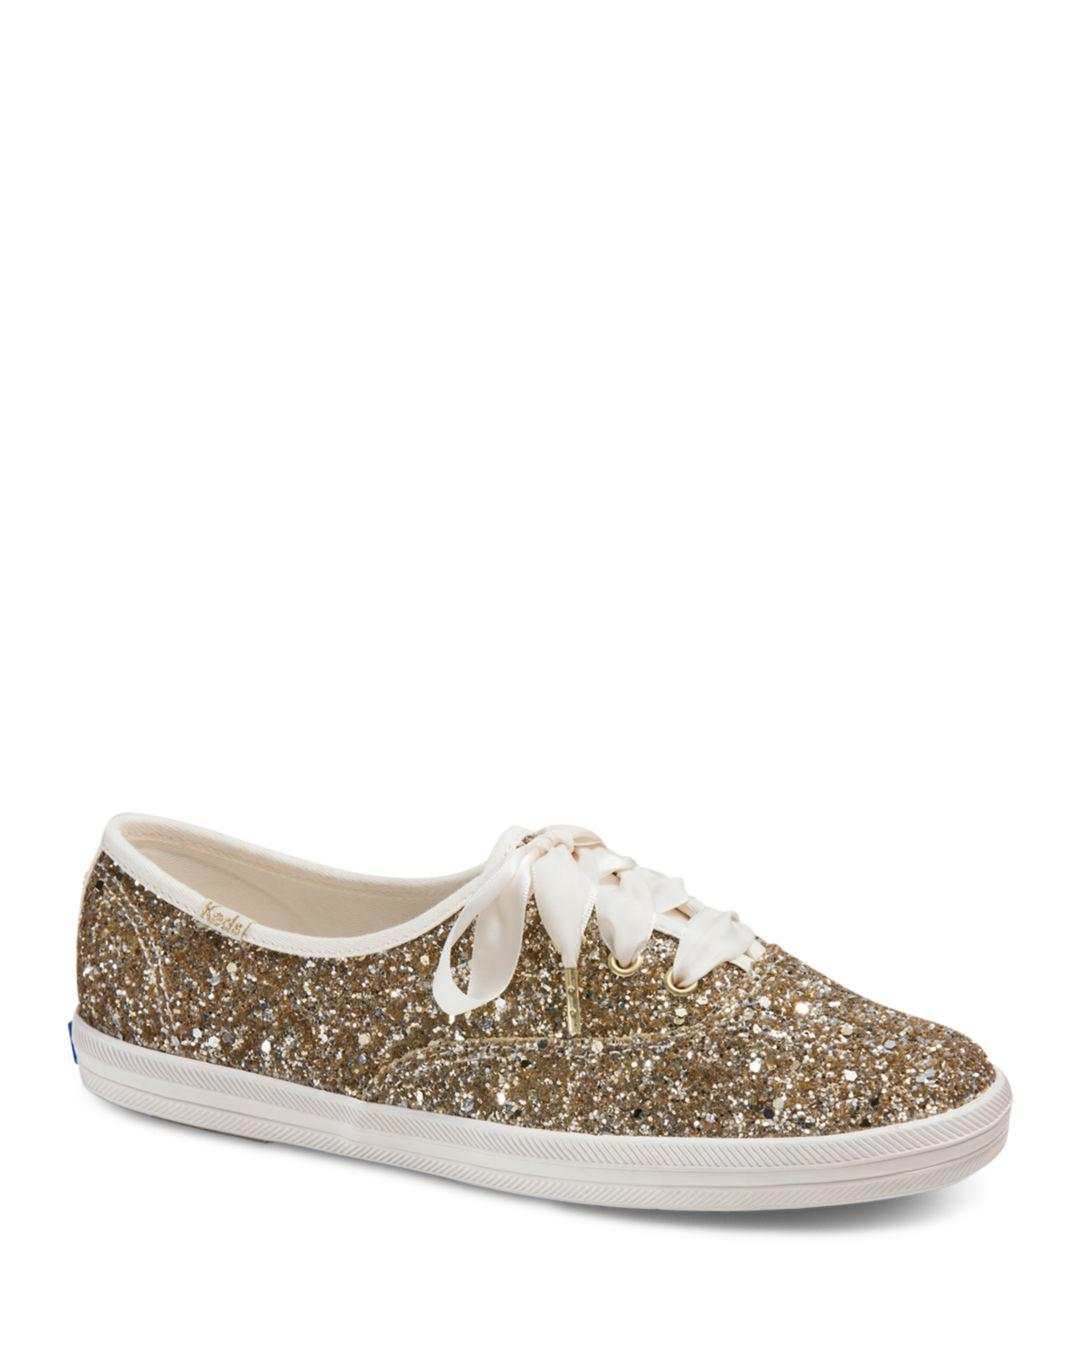 65fb5705b3 Lyst - Keds X Kate Spade New York Women s Glitter Lace Up Sneakers ...